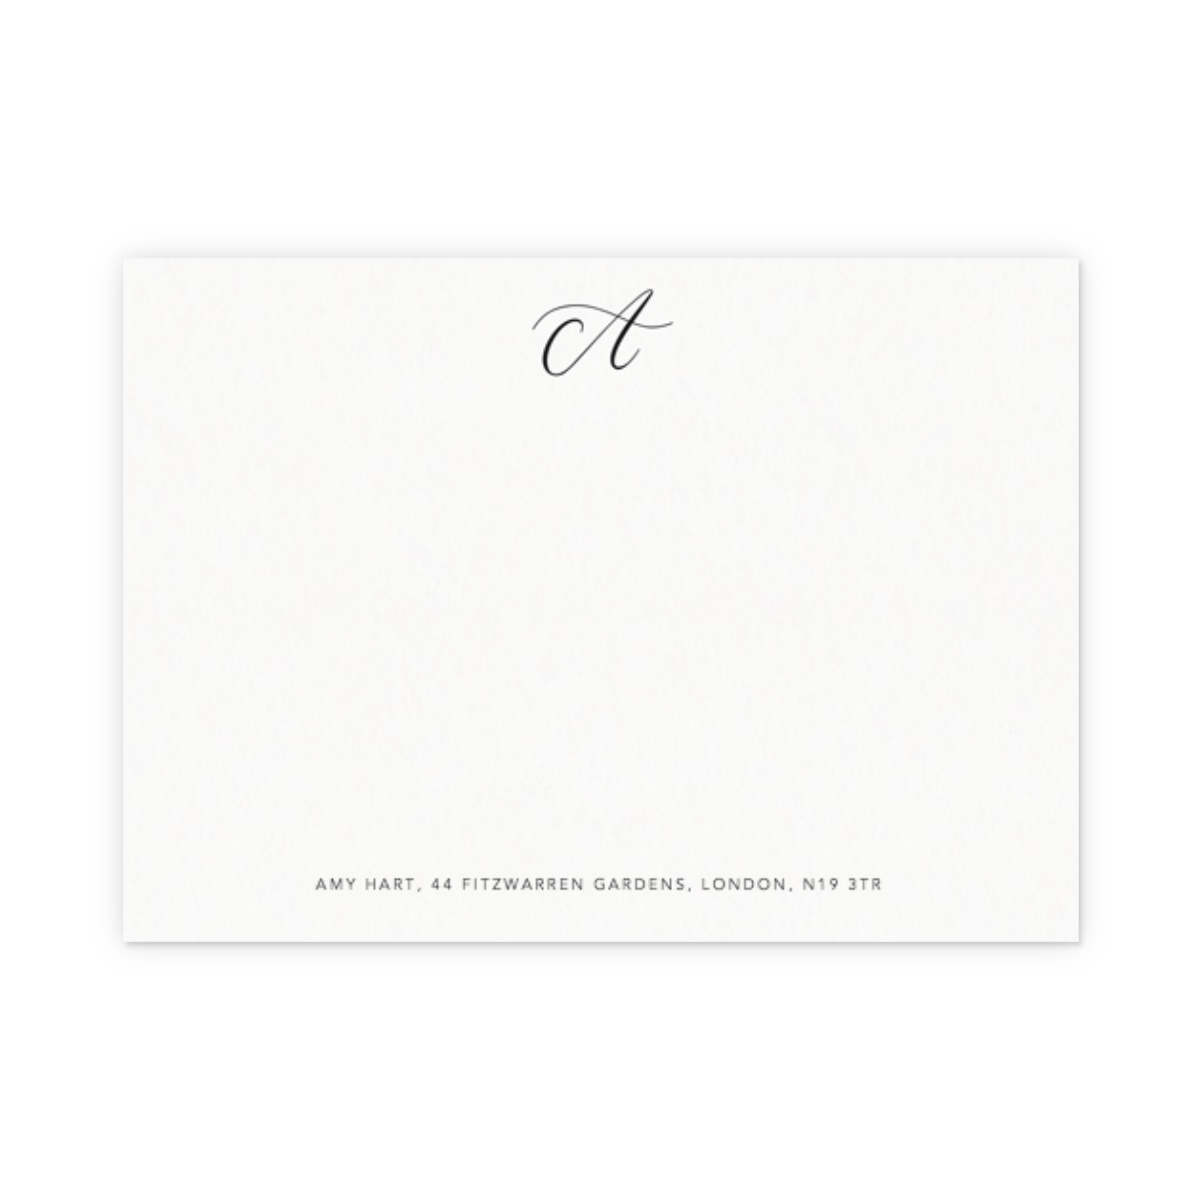 Https%3a%2f%2fwww.papier.com%2fproduct image%2f48417%2f10%2fmonogram smooth a z 11891 avant 1539684634.png?ixlib=rb 1.1